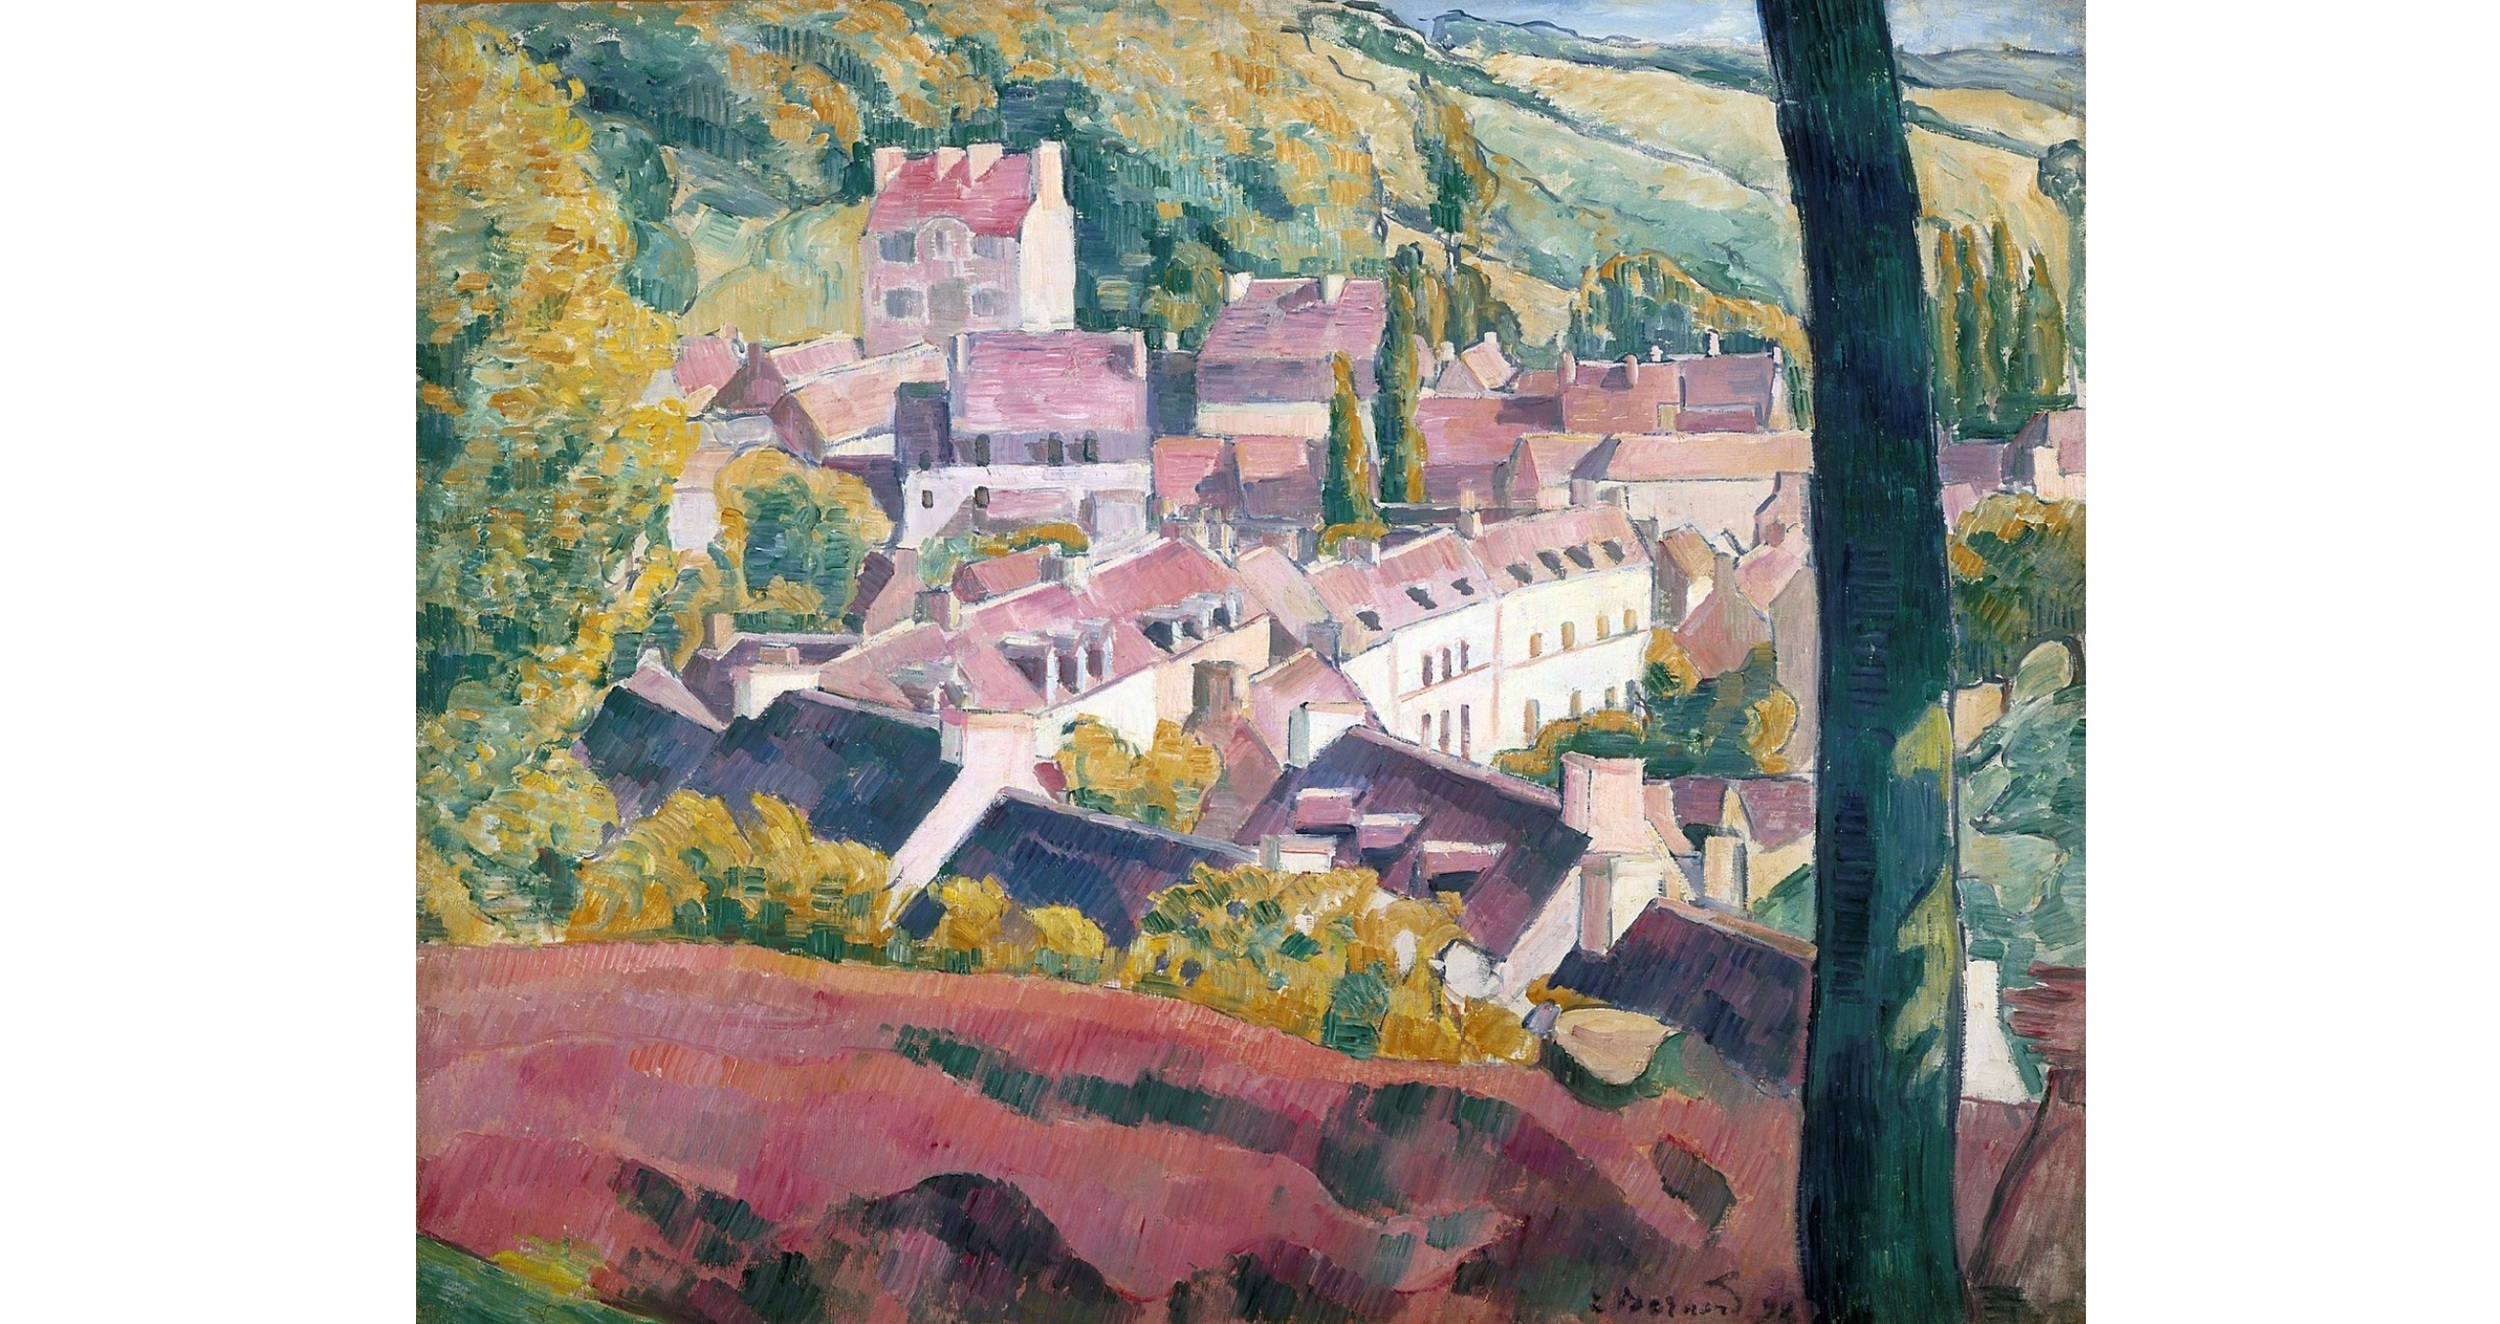 Pont-Aven Seen From the Bois D'Amour, 1892 - Émile Bernard